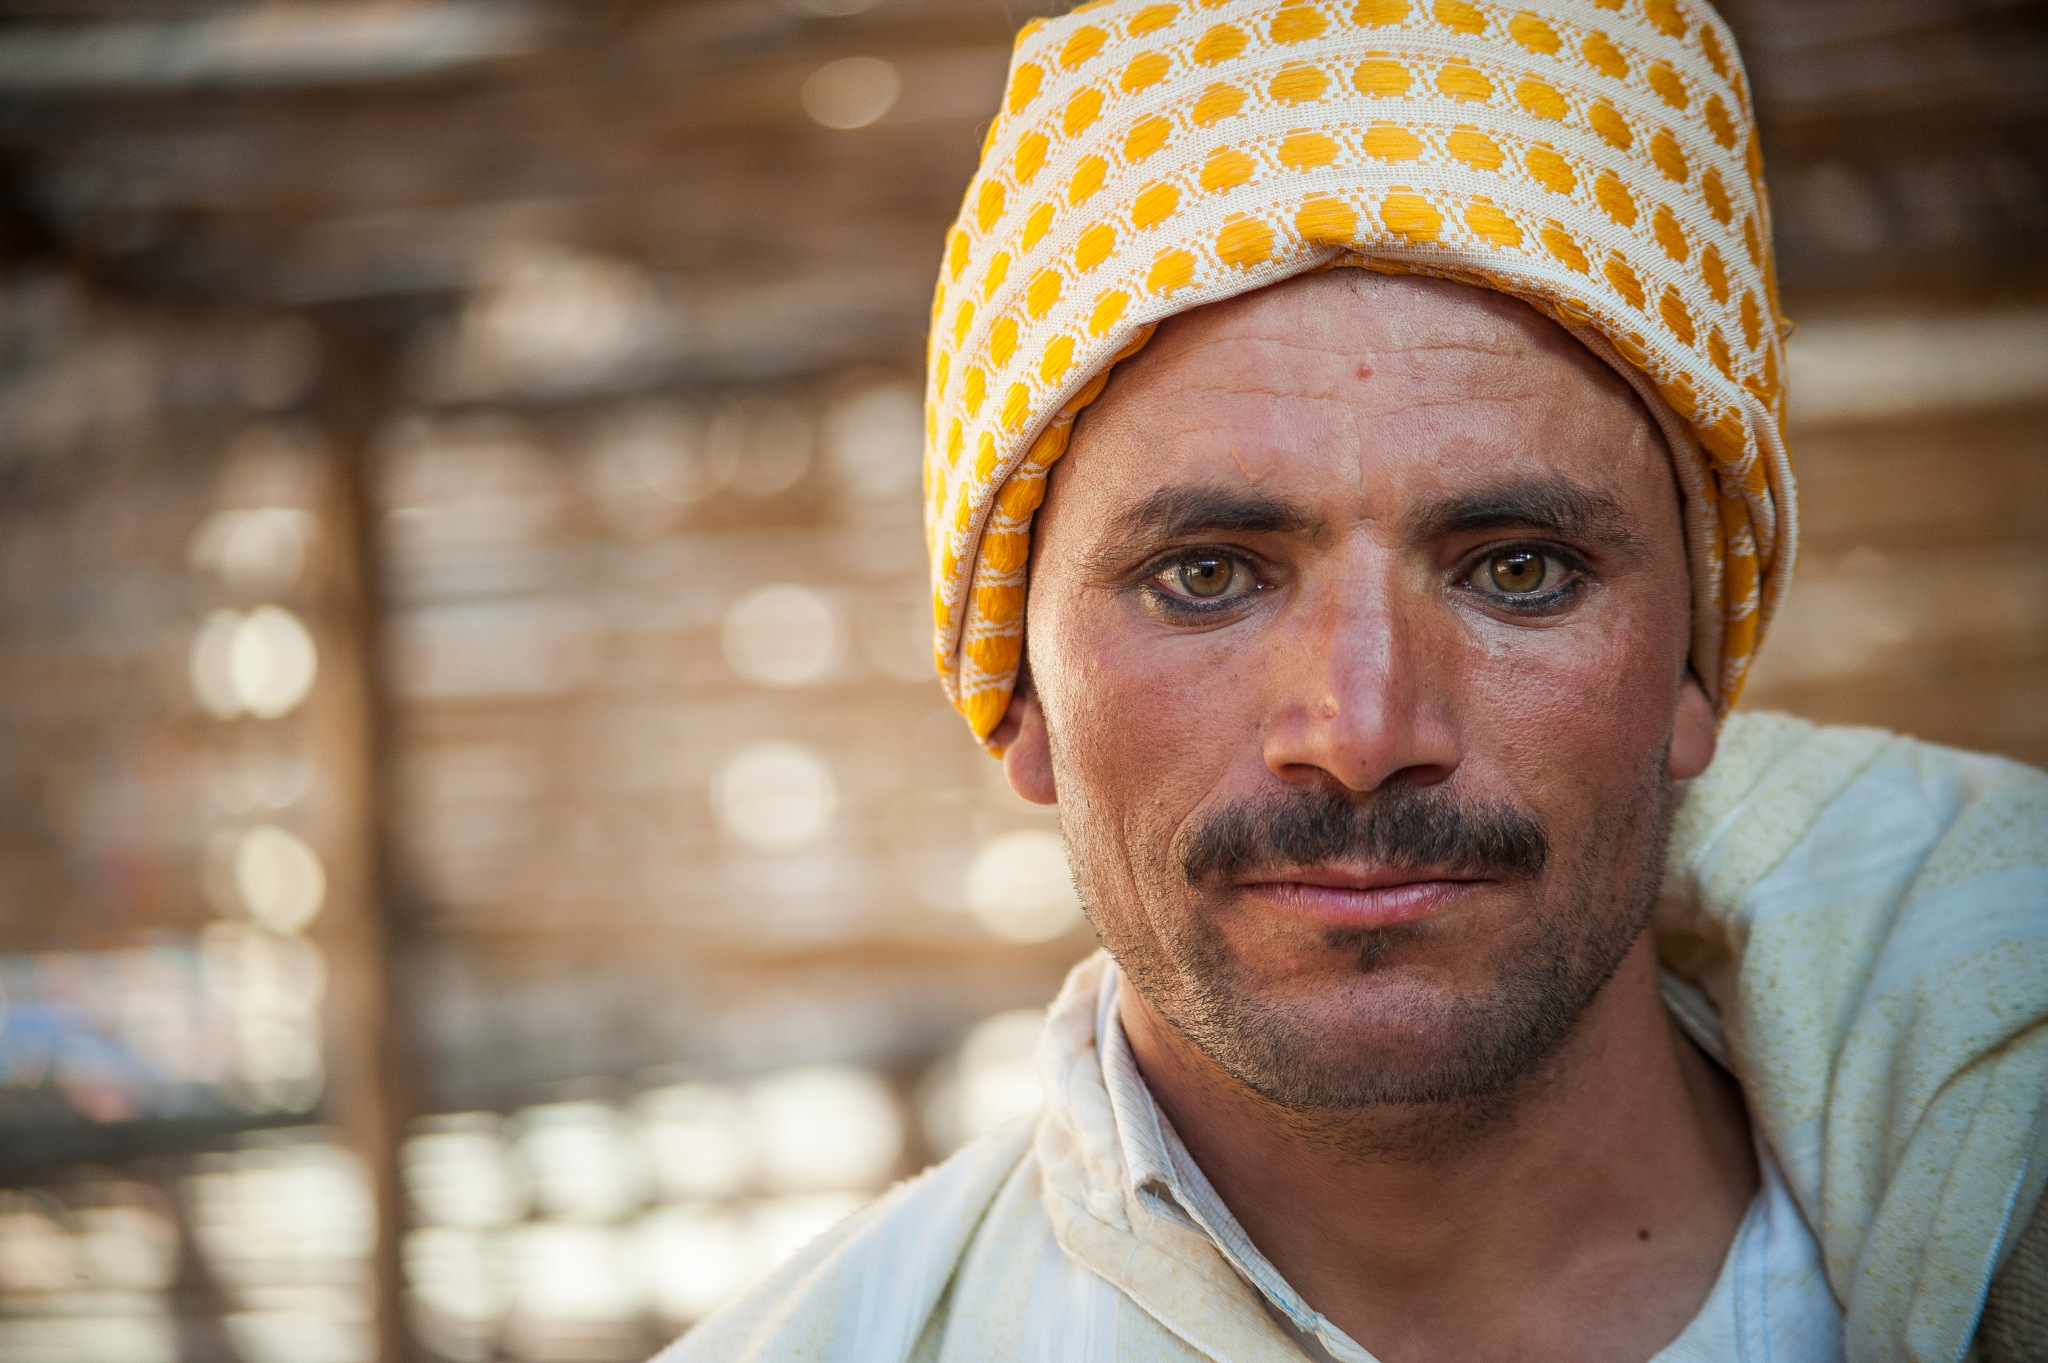 A nomad from the ATLAS MOUNTAINS by Allal Fadili